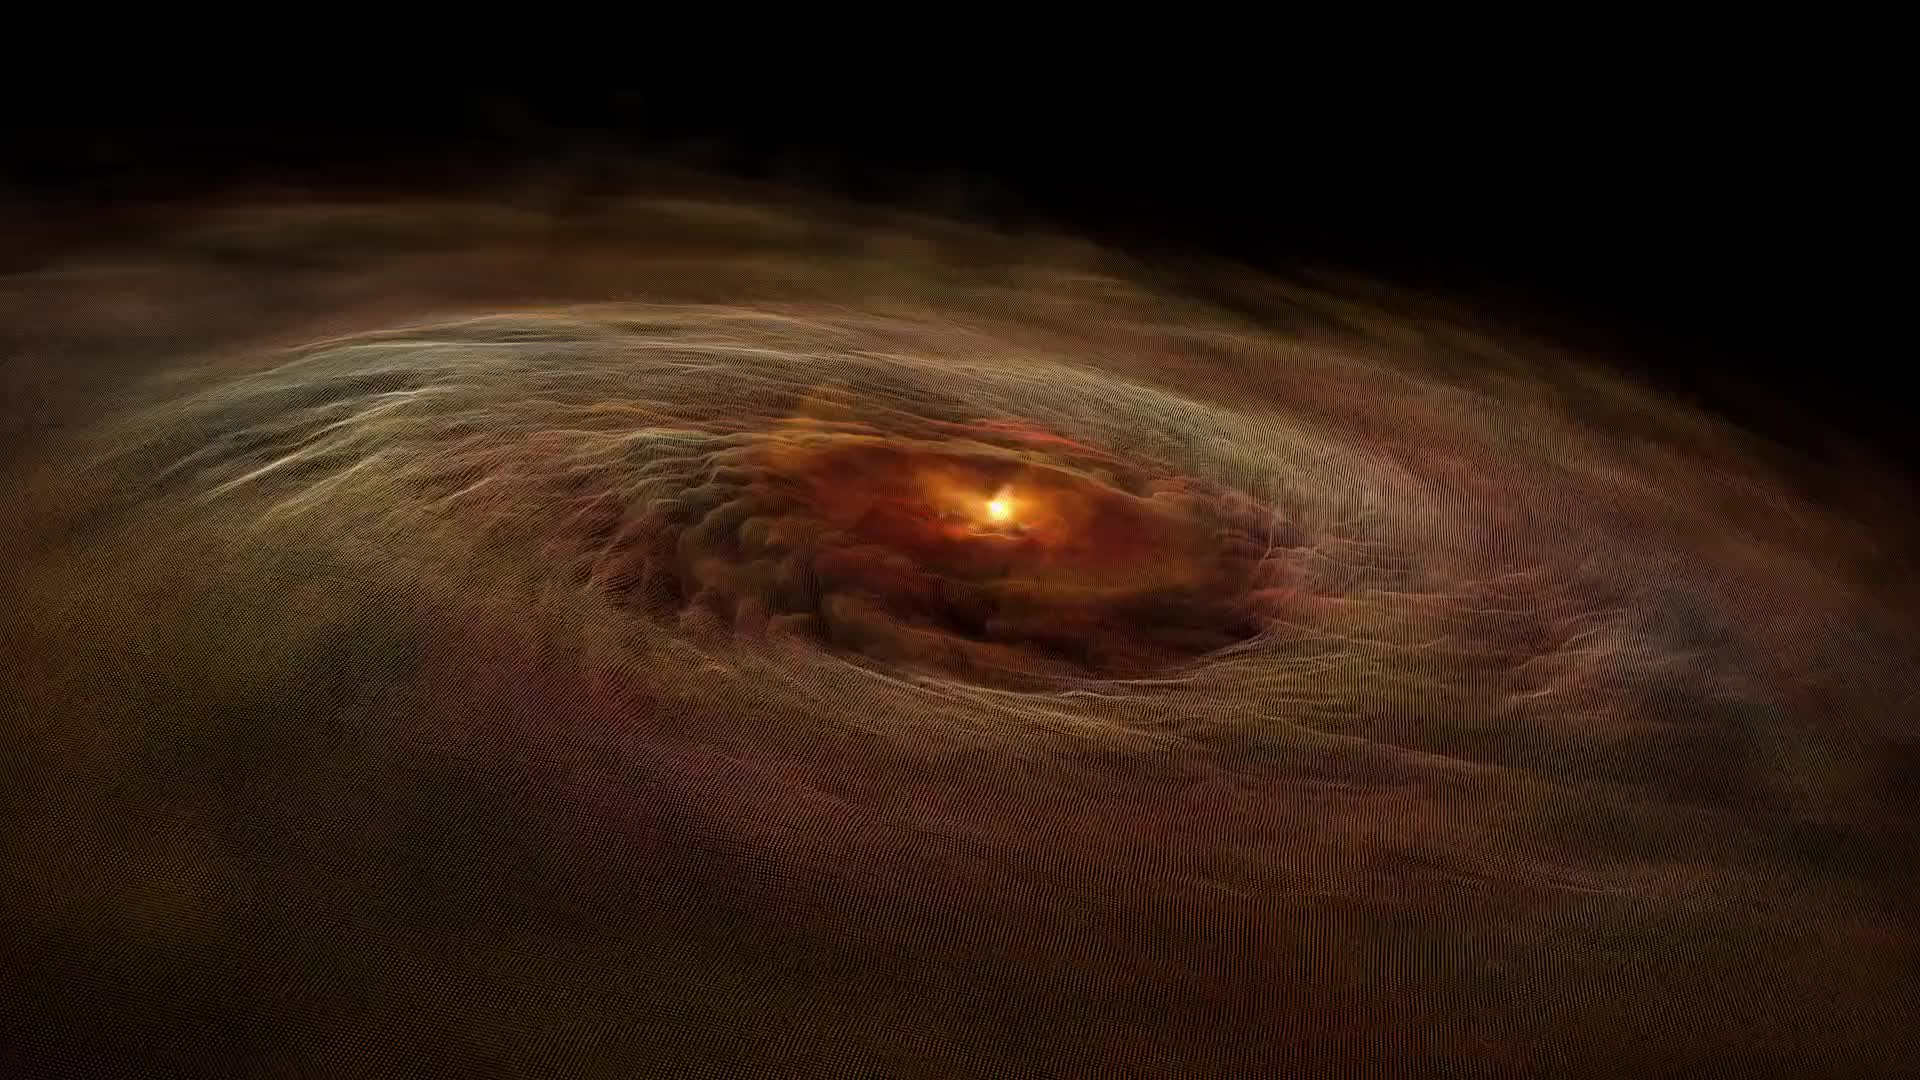 Black hole explosion detonation swirl hole